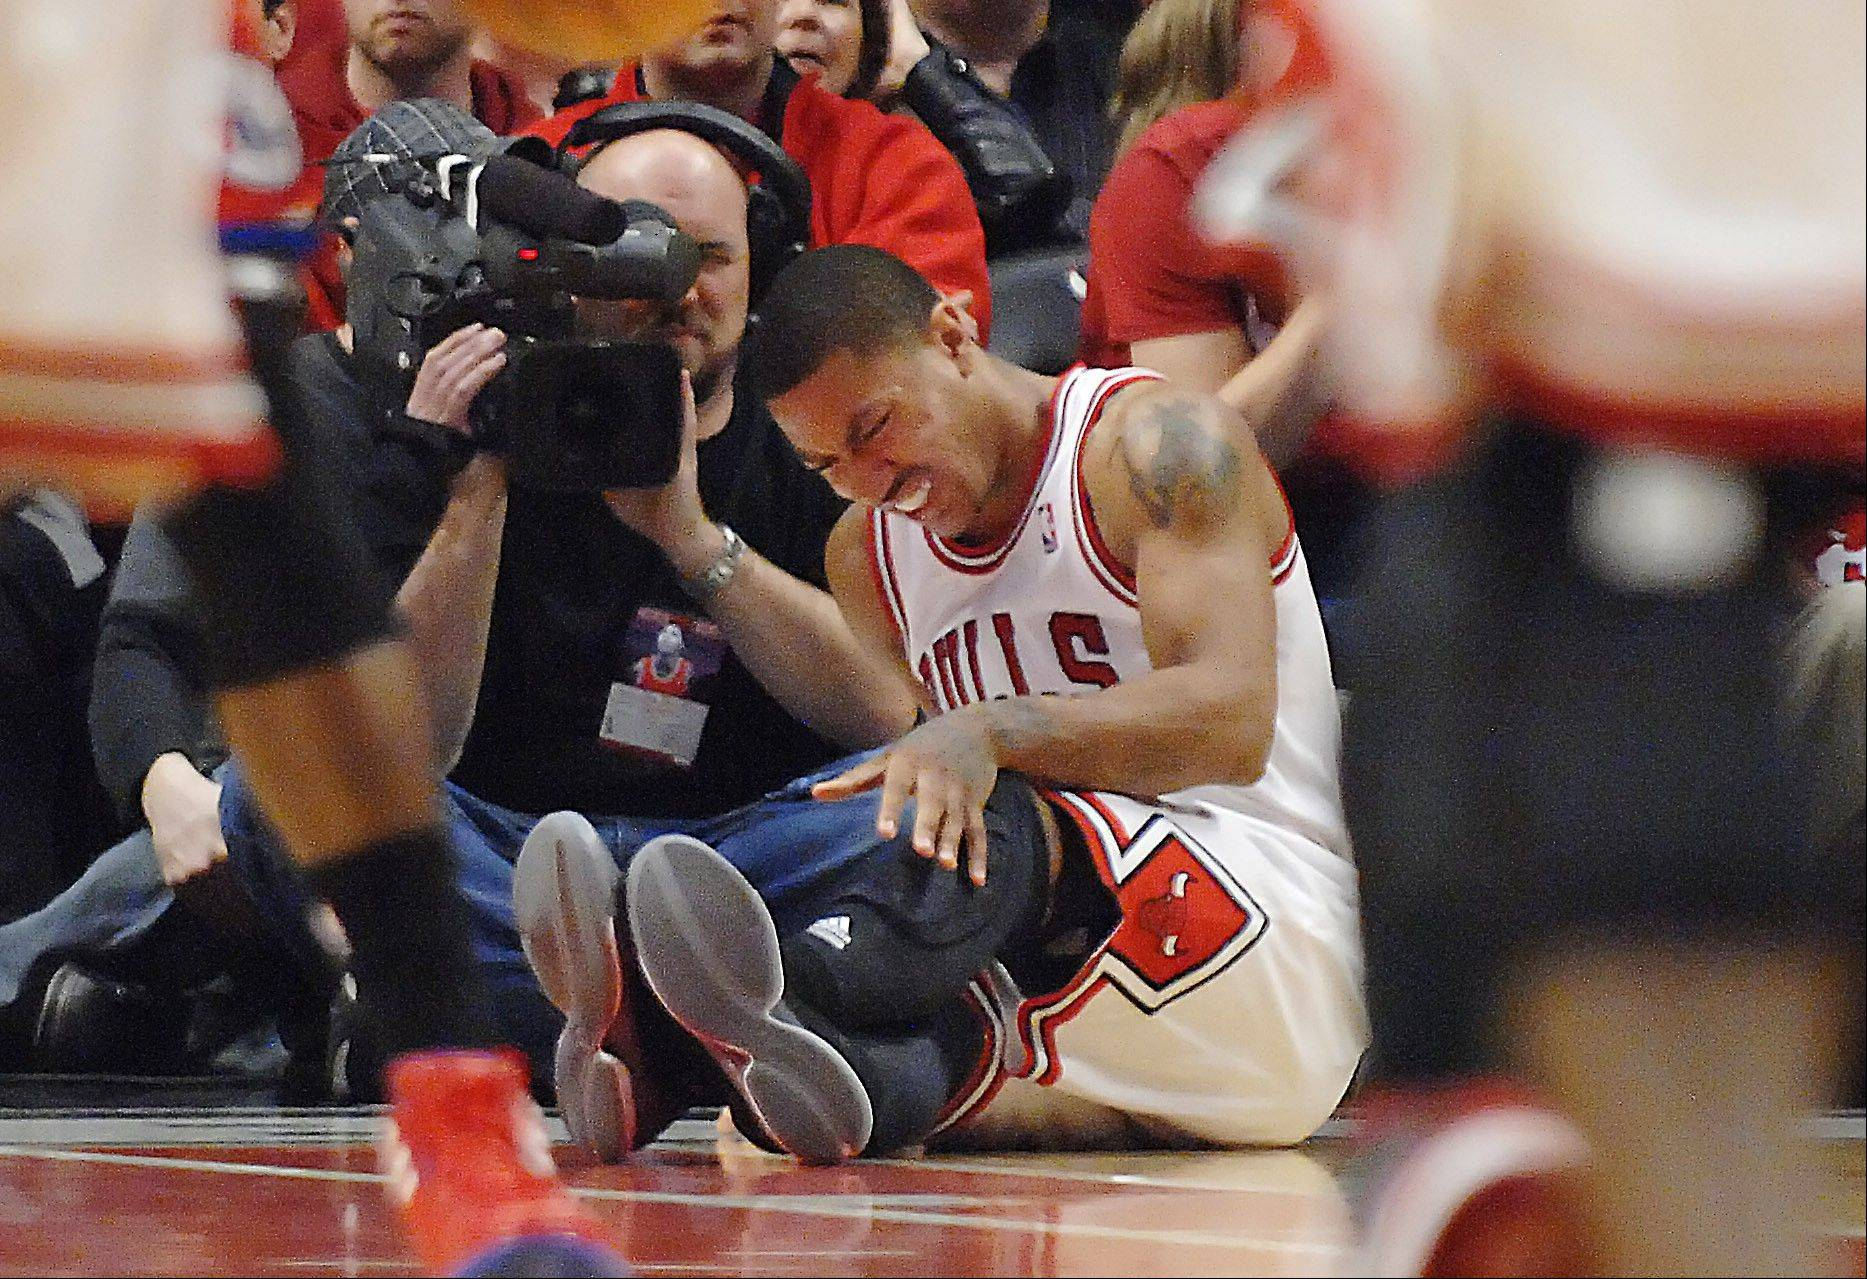 Silly to blame Thibodeau for crushing injury